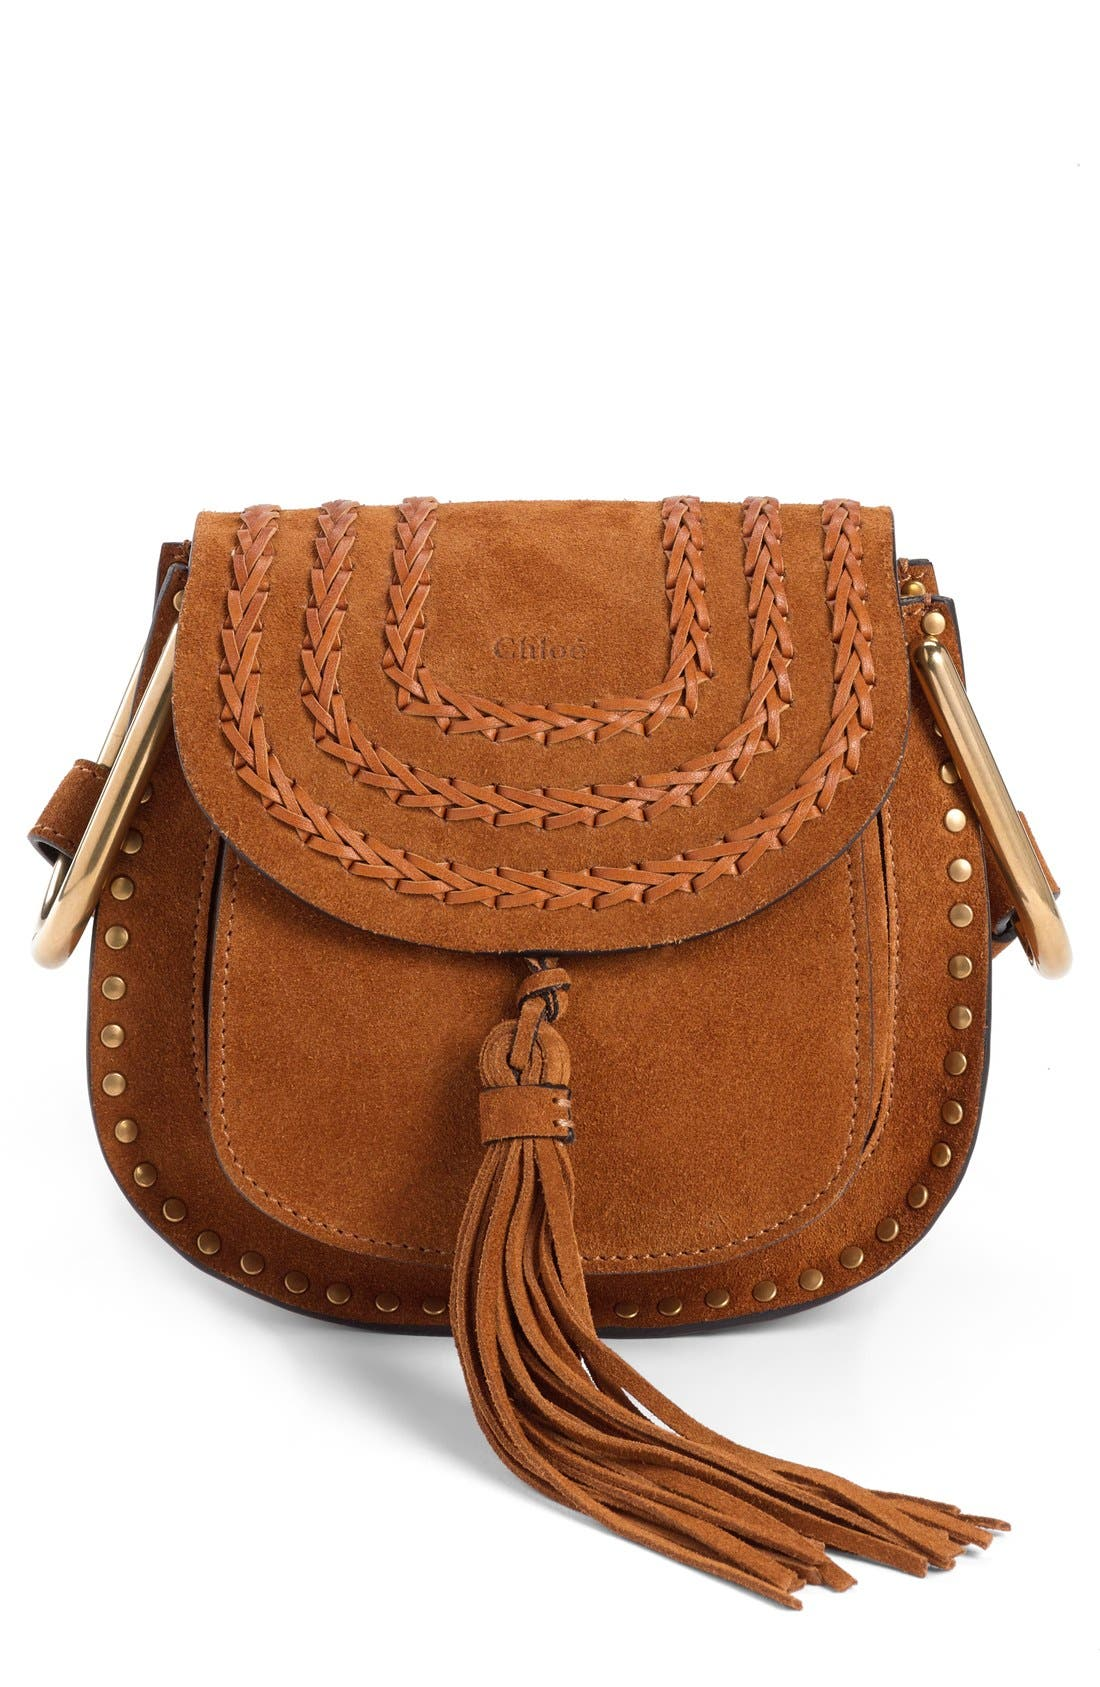 Alternate Image 1 Selected - Chloé 'Mini Hudson' Crossbody Bag